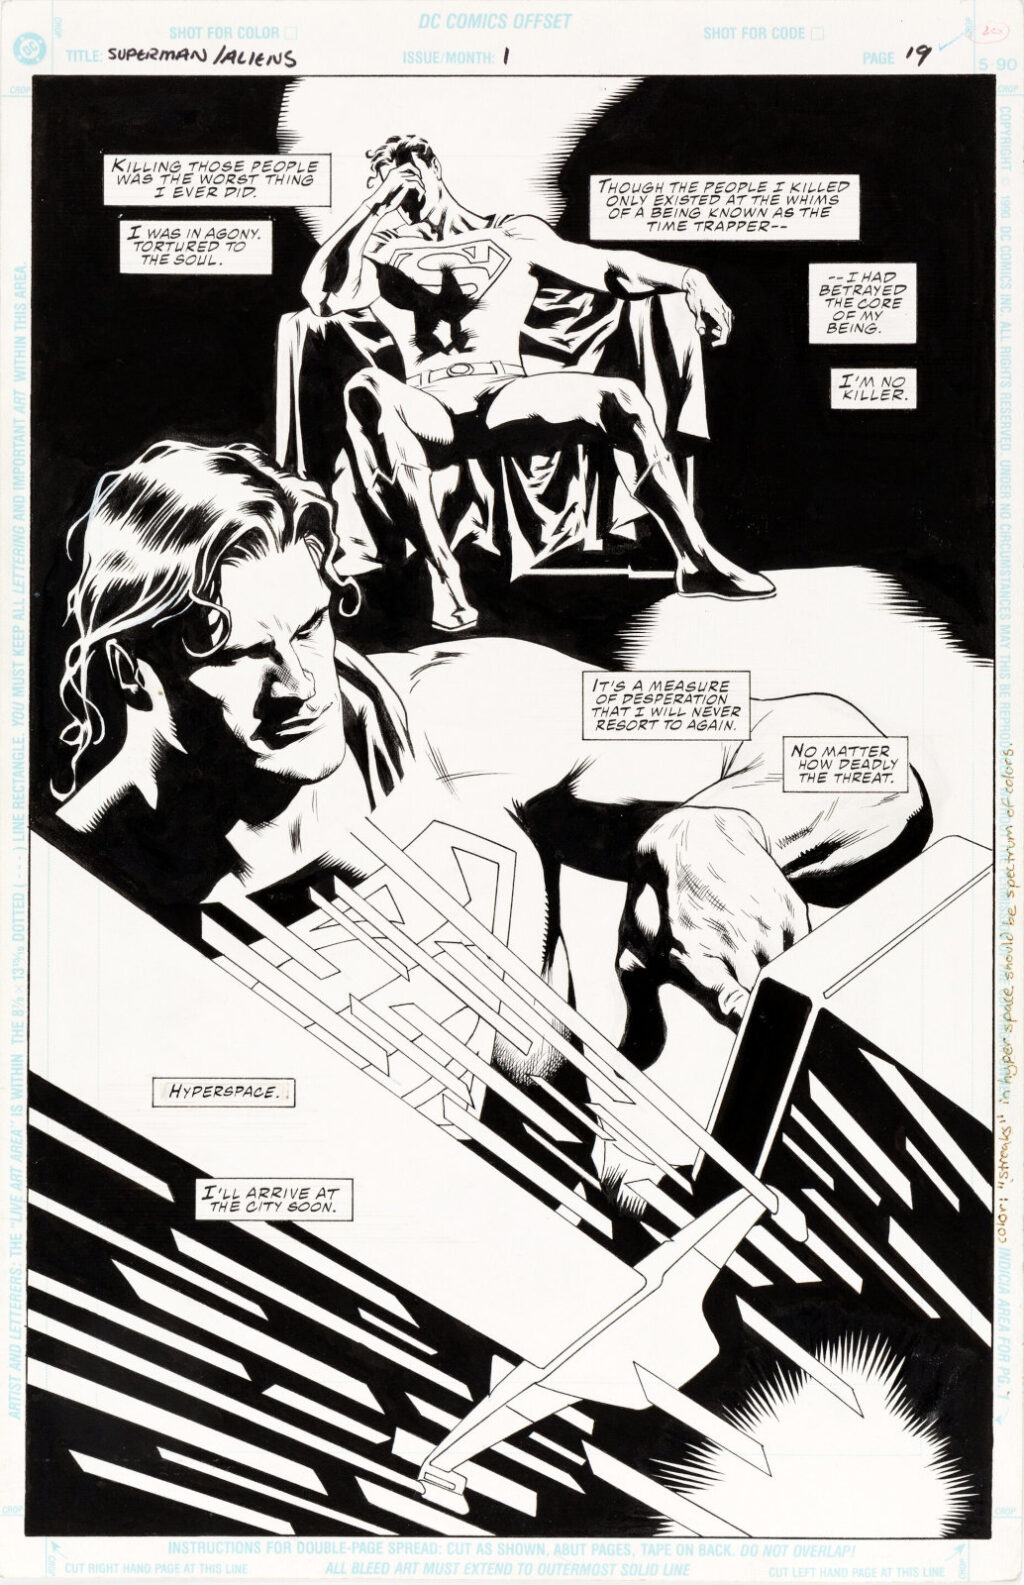 Superman vs. Aliens issue 1 page 19 by Dan Jurgens and Kevin Nowlan